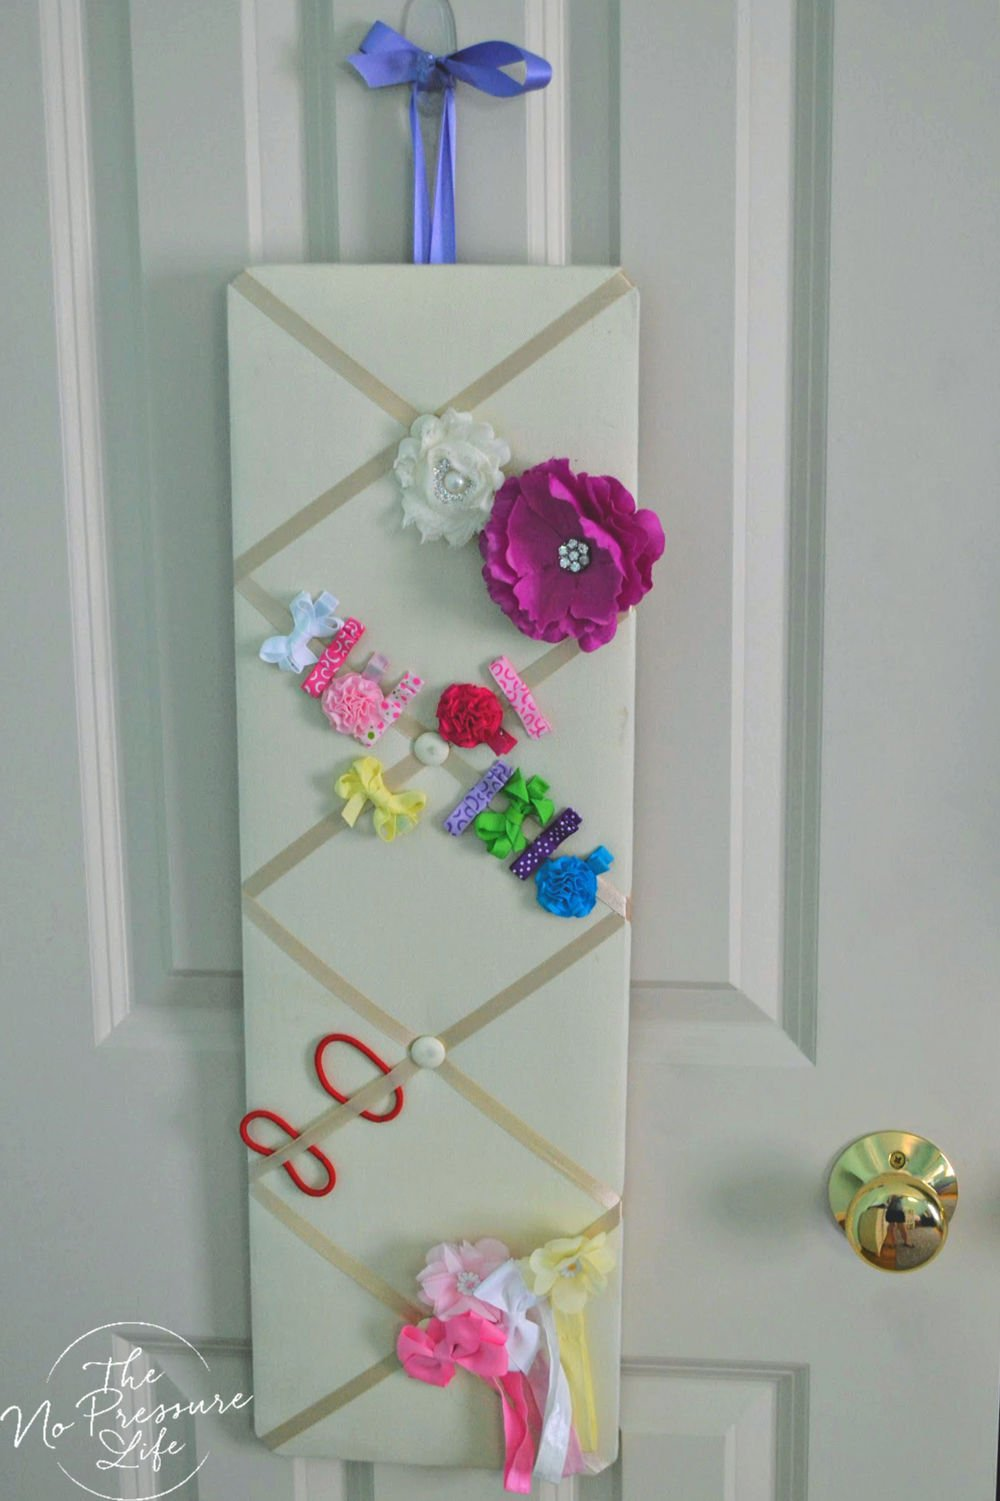 Organizing hair accessories on a door with a memo board